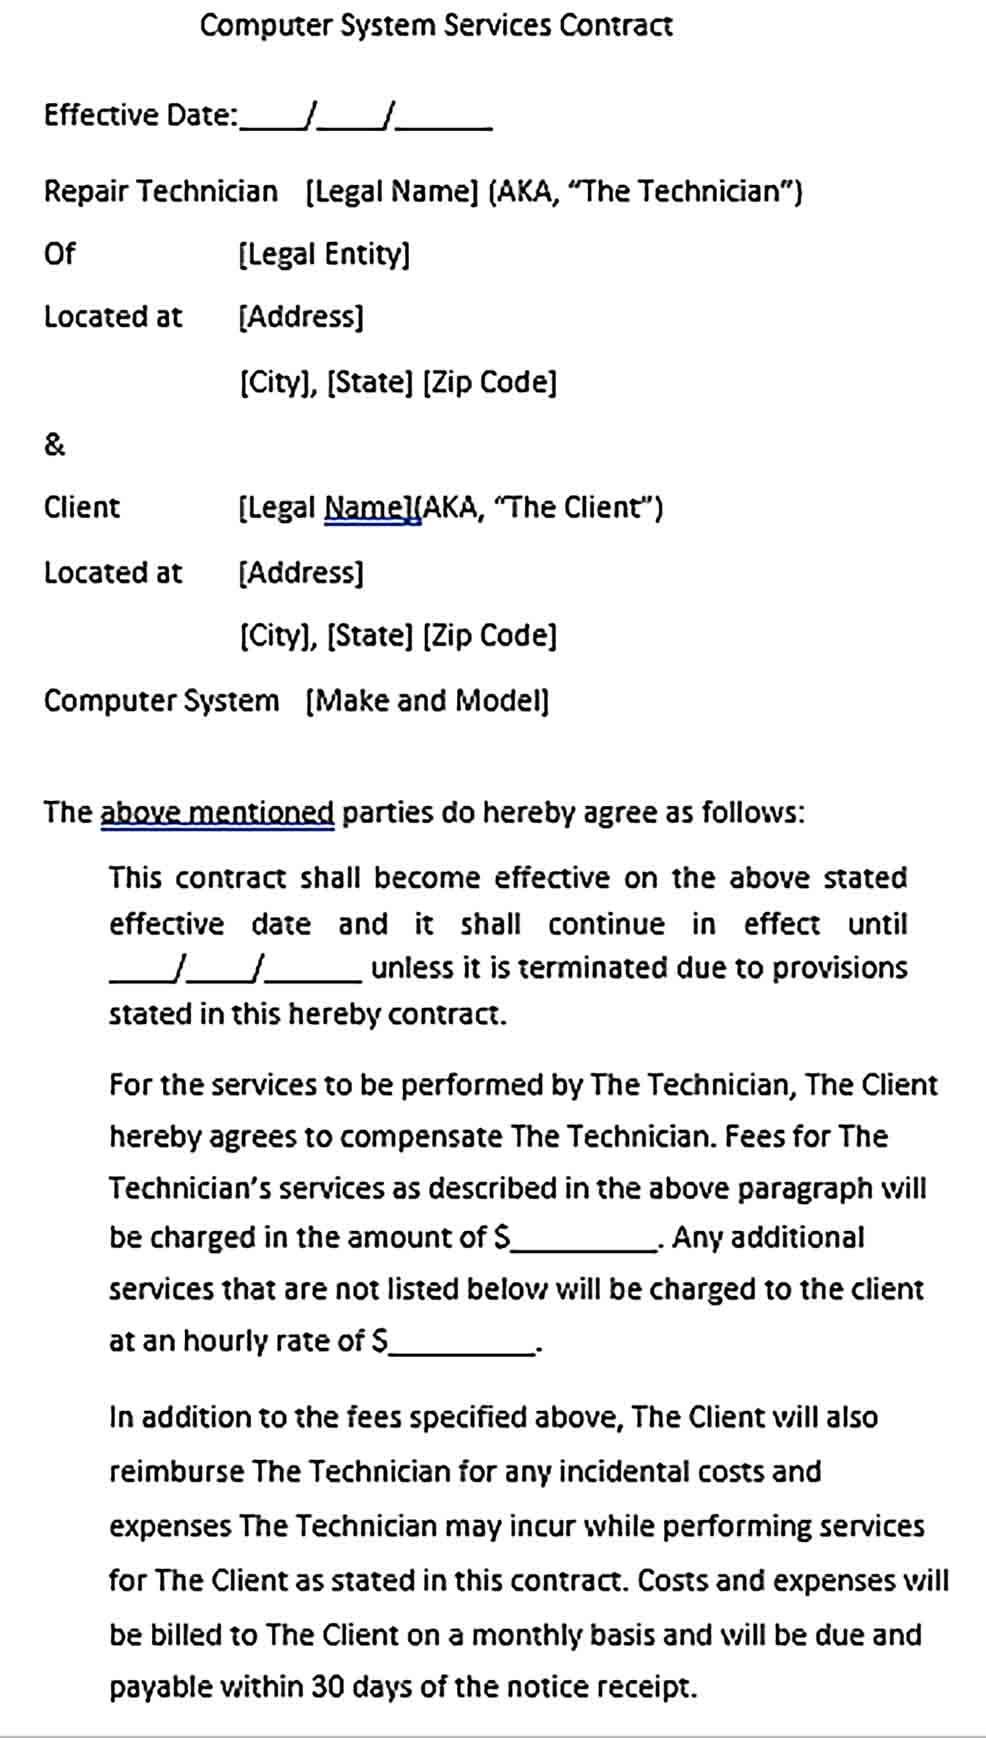 Sample Computer System Services Contract